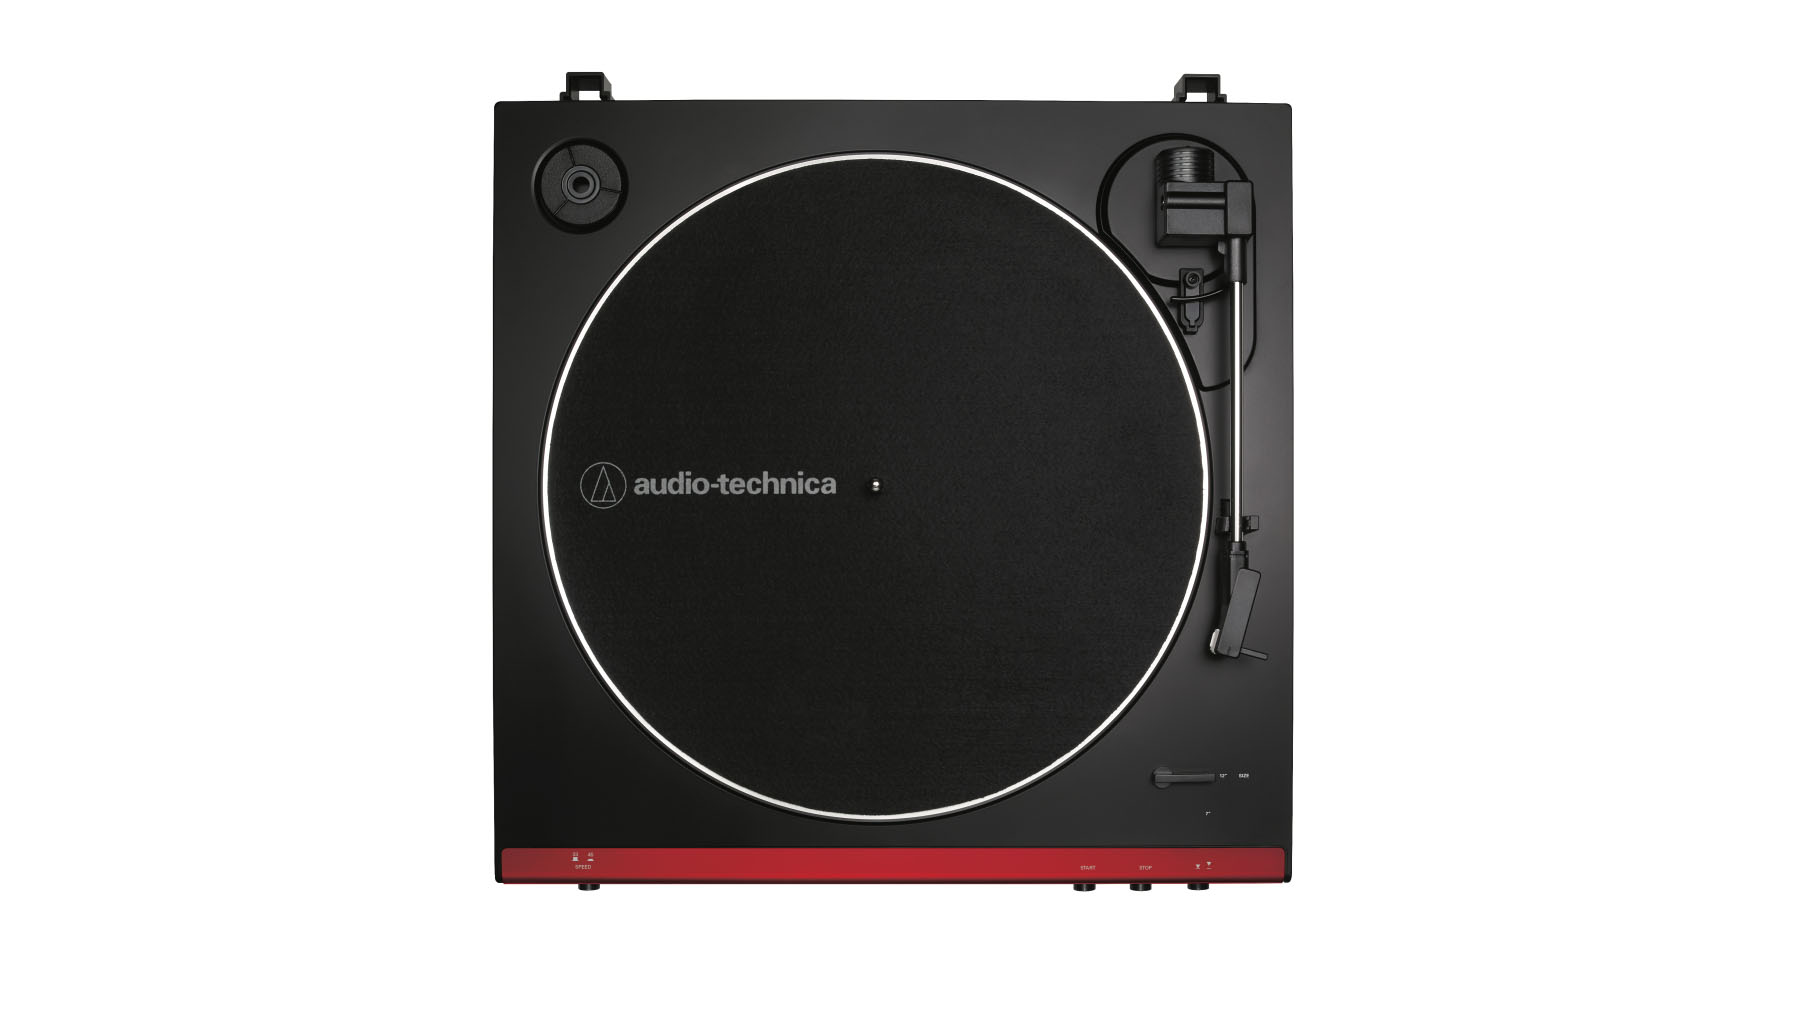 A product shot of the Audio Technica AT-LP60X